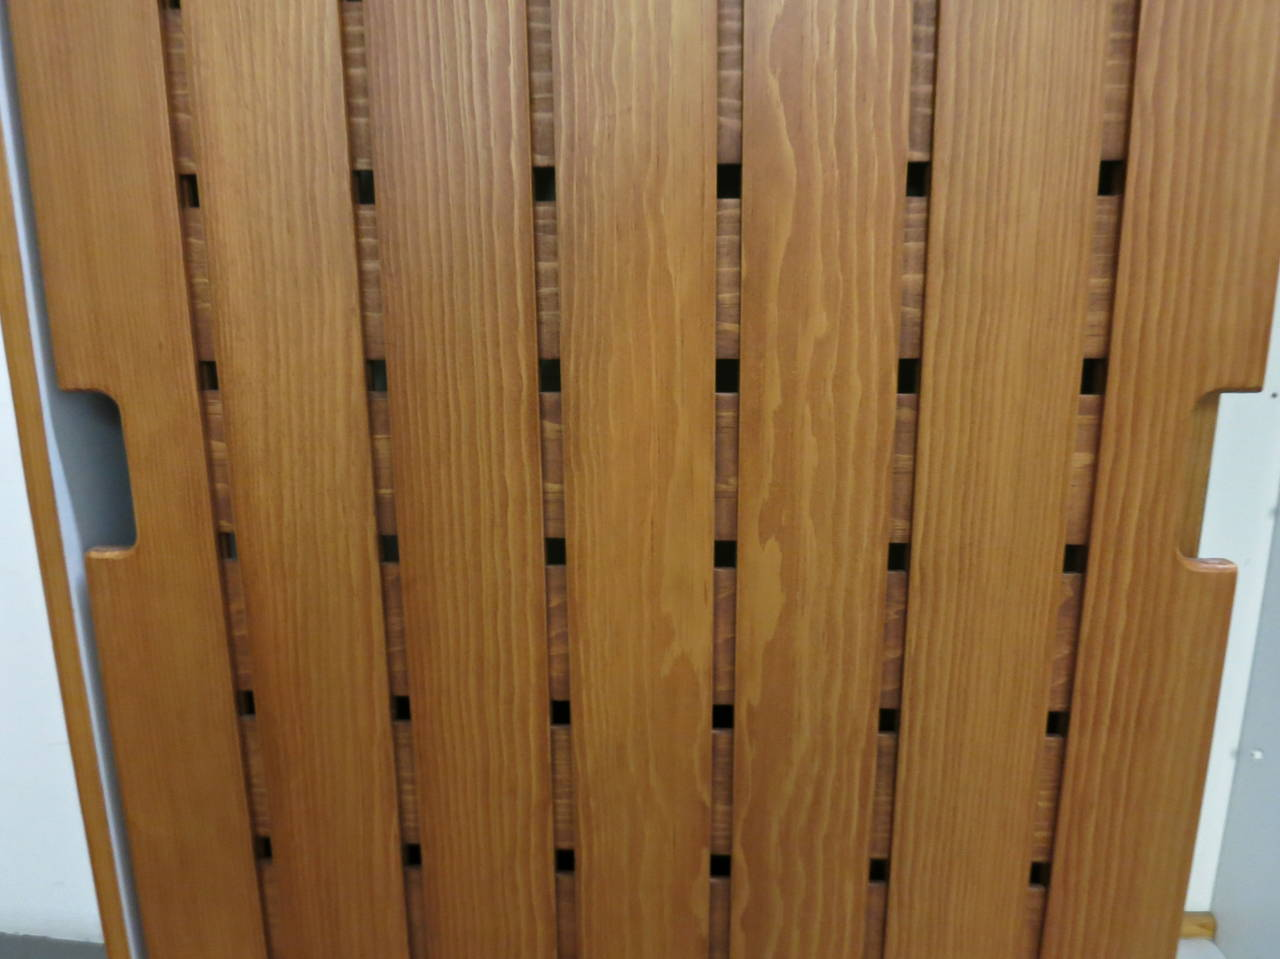 Pair of Wardrobes by Charlotte Perriand, in 1967 for Les Arc Ski Lodge, France For Sale 3